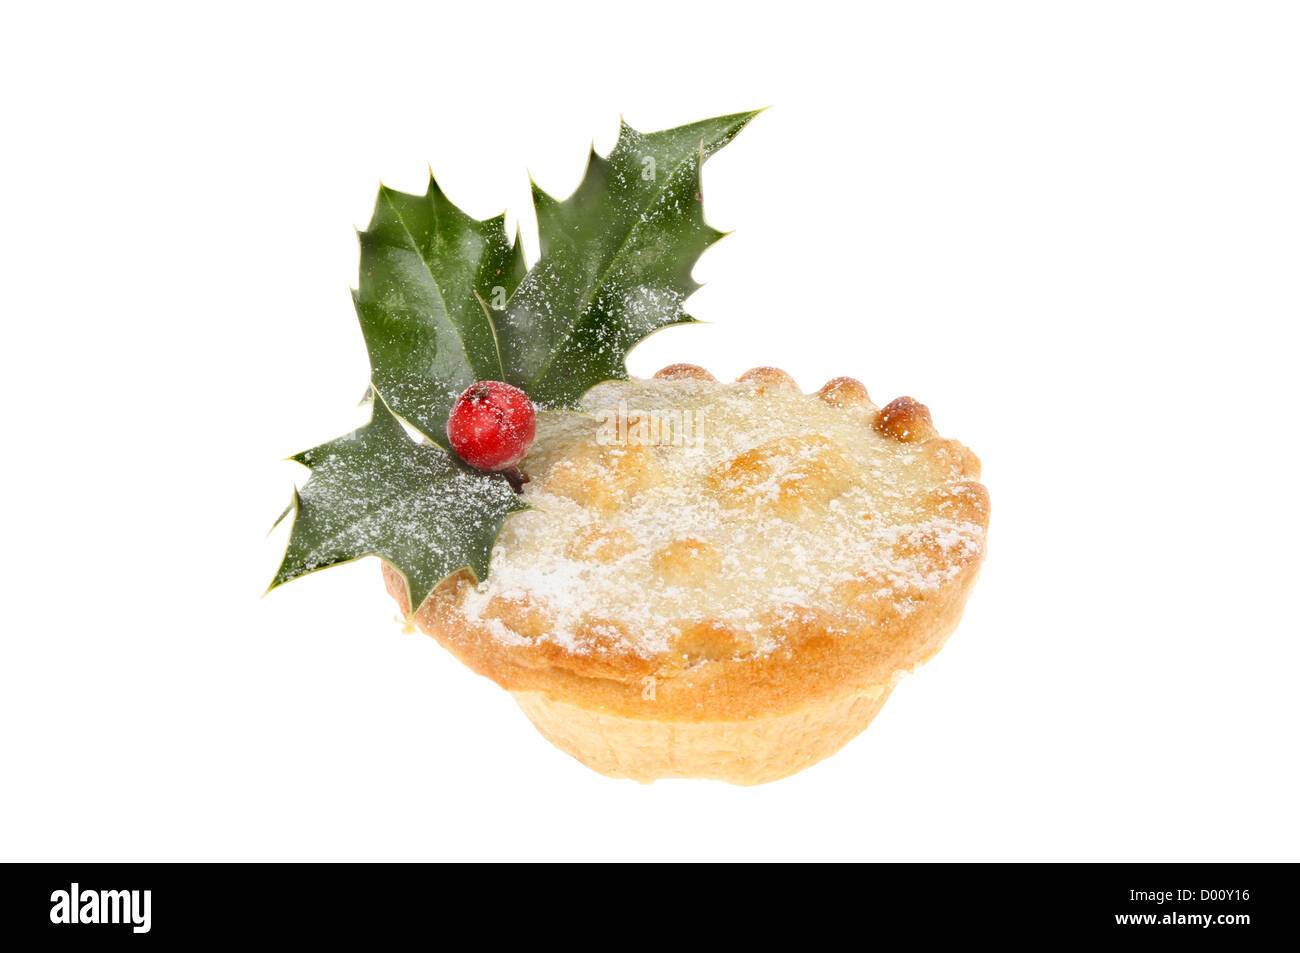 Mince pie dusted with icing sugar and decorated with a sprig of real holly isolated against white - Stock Image